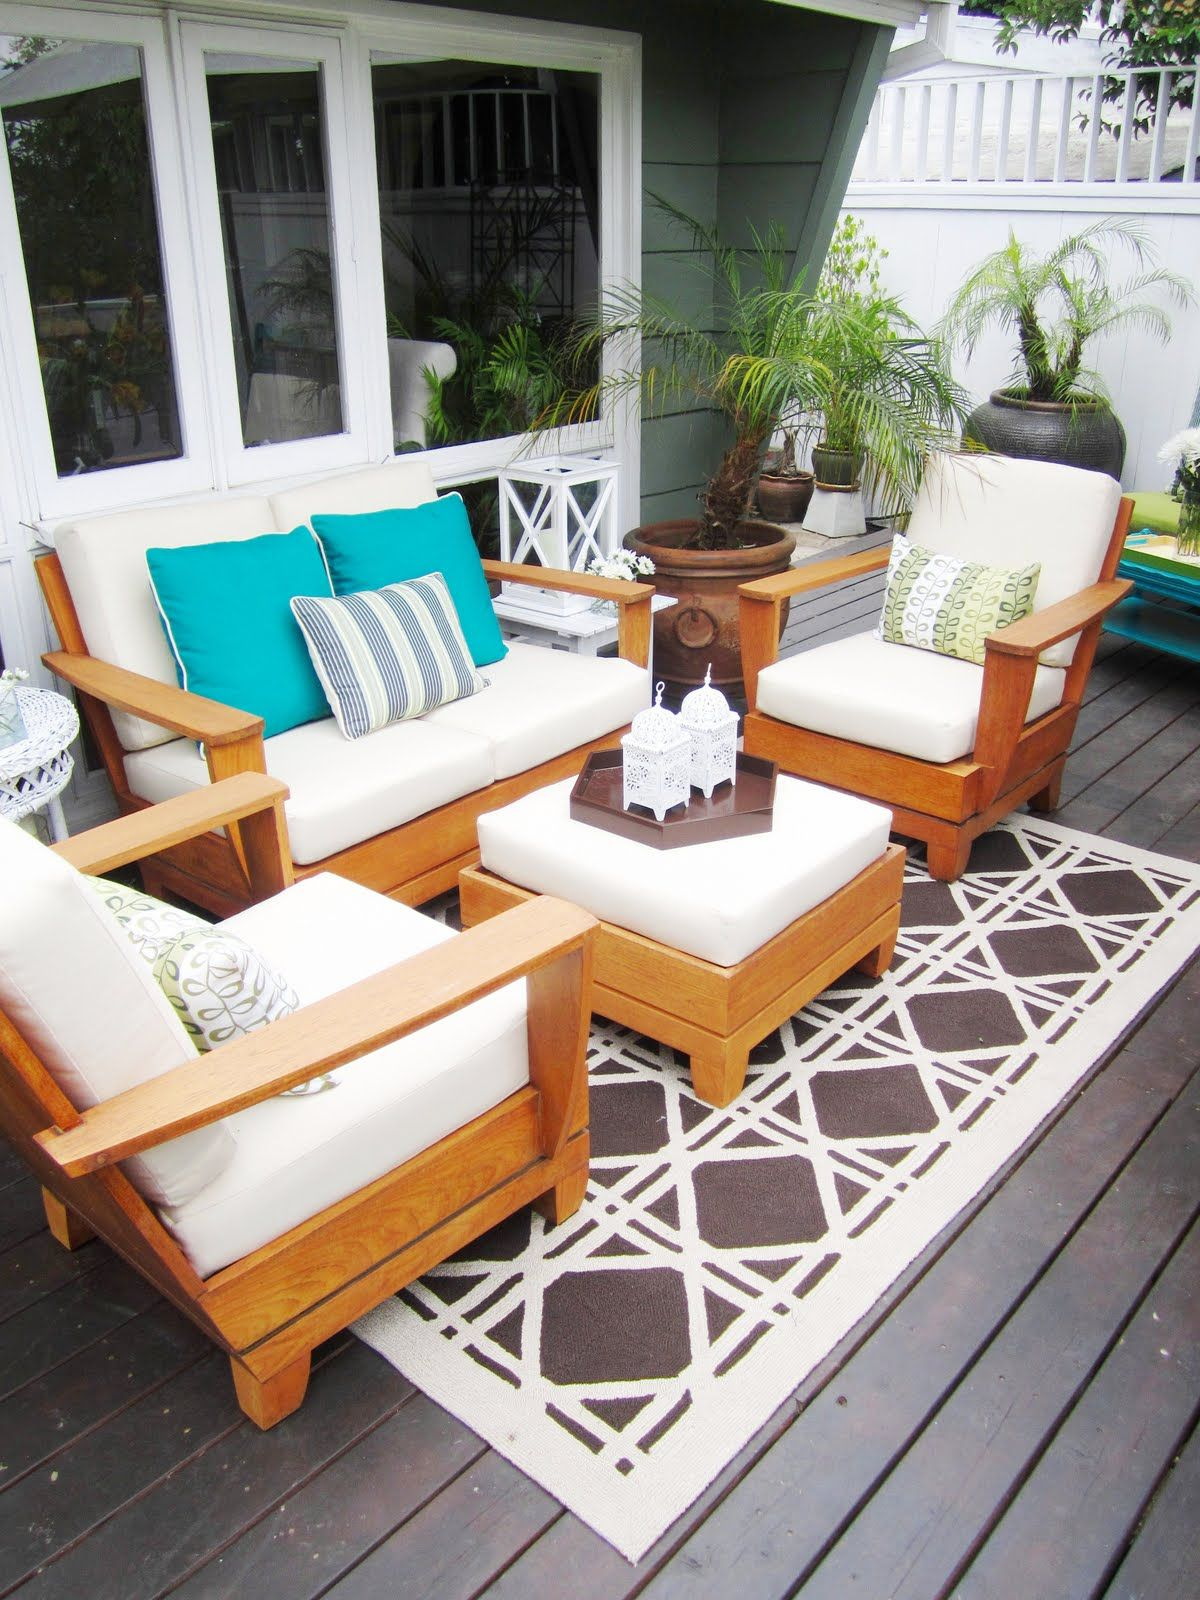 White Patio Furniture Sets For Small Spaces Among Rug